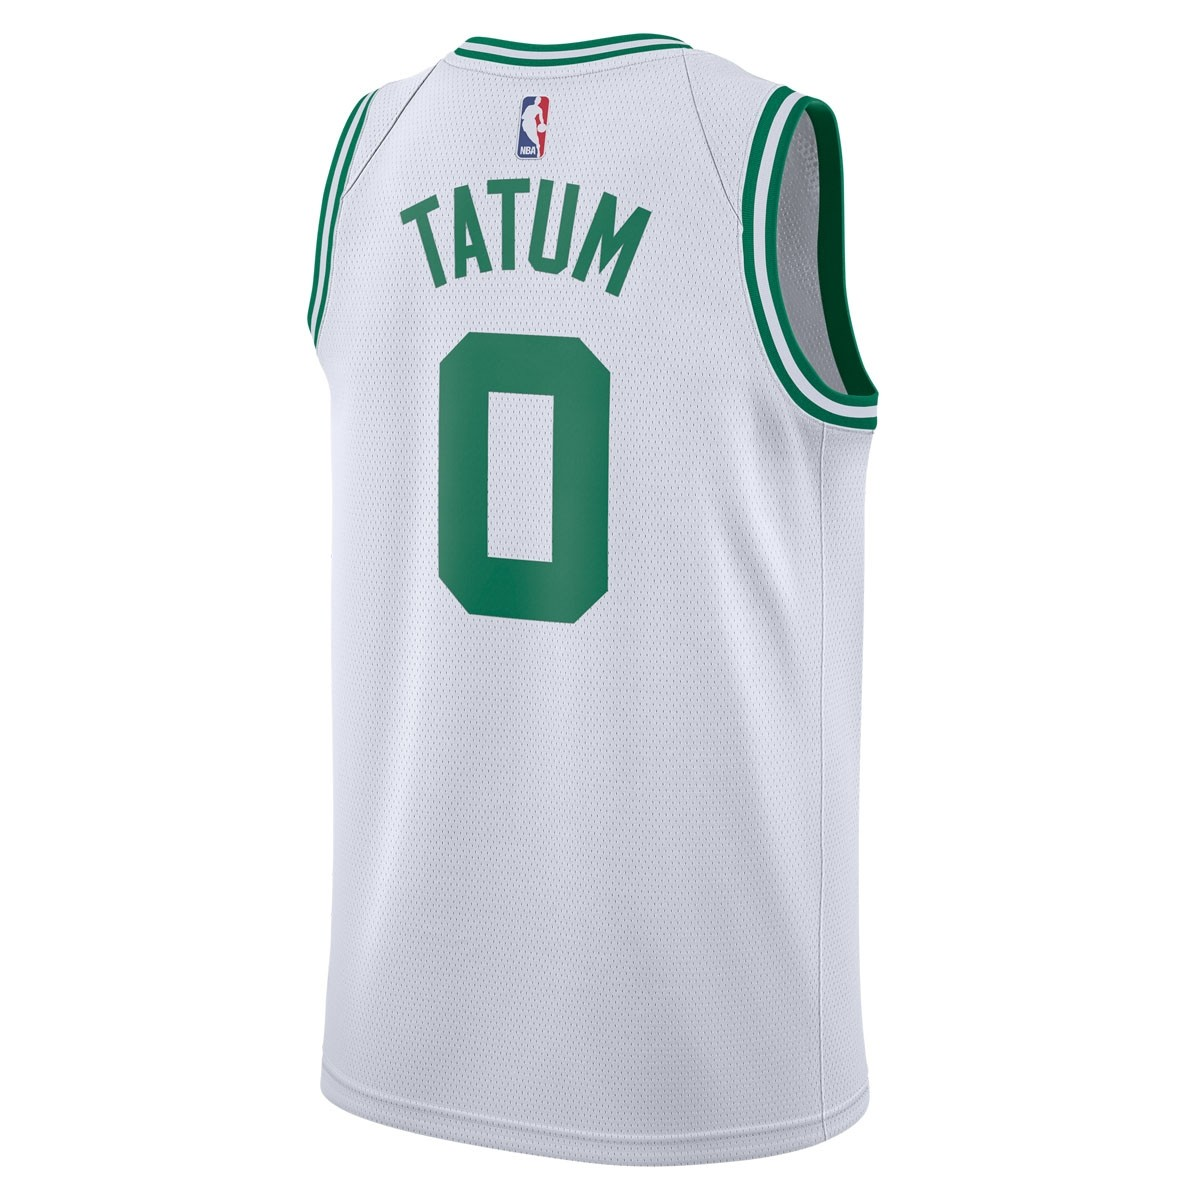 Nike NBA Celtics Swingman Jersey Tatum 19/20 'Association Edition' 864403-101